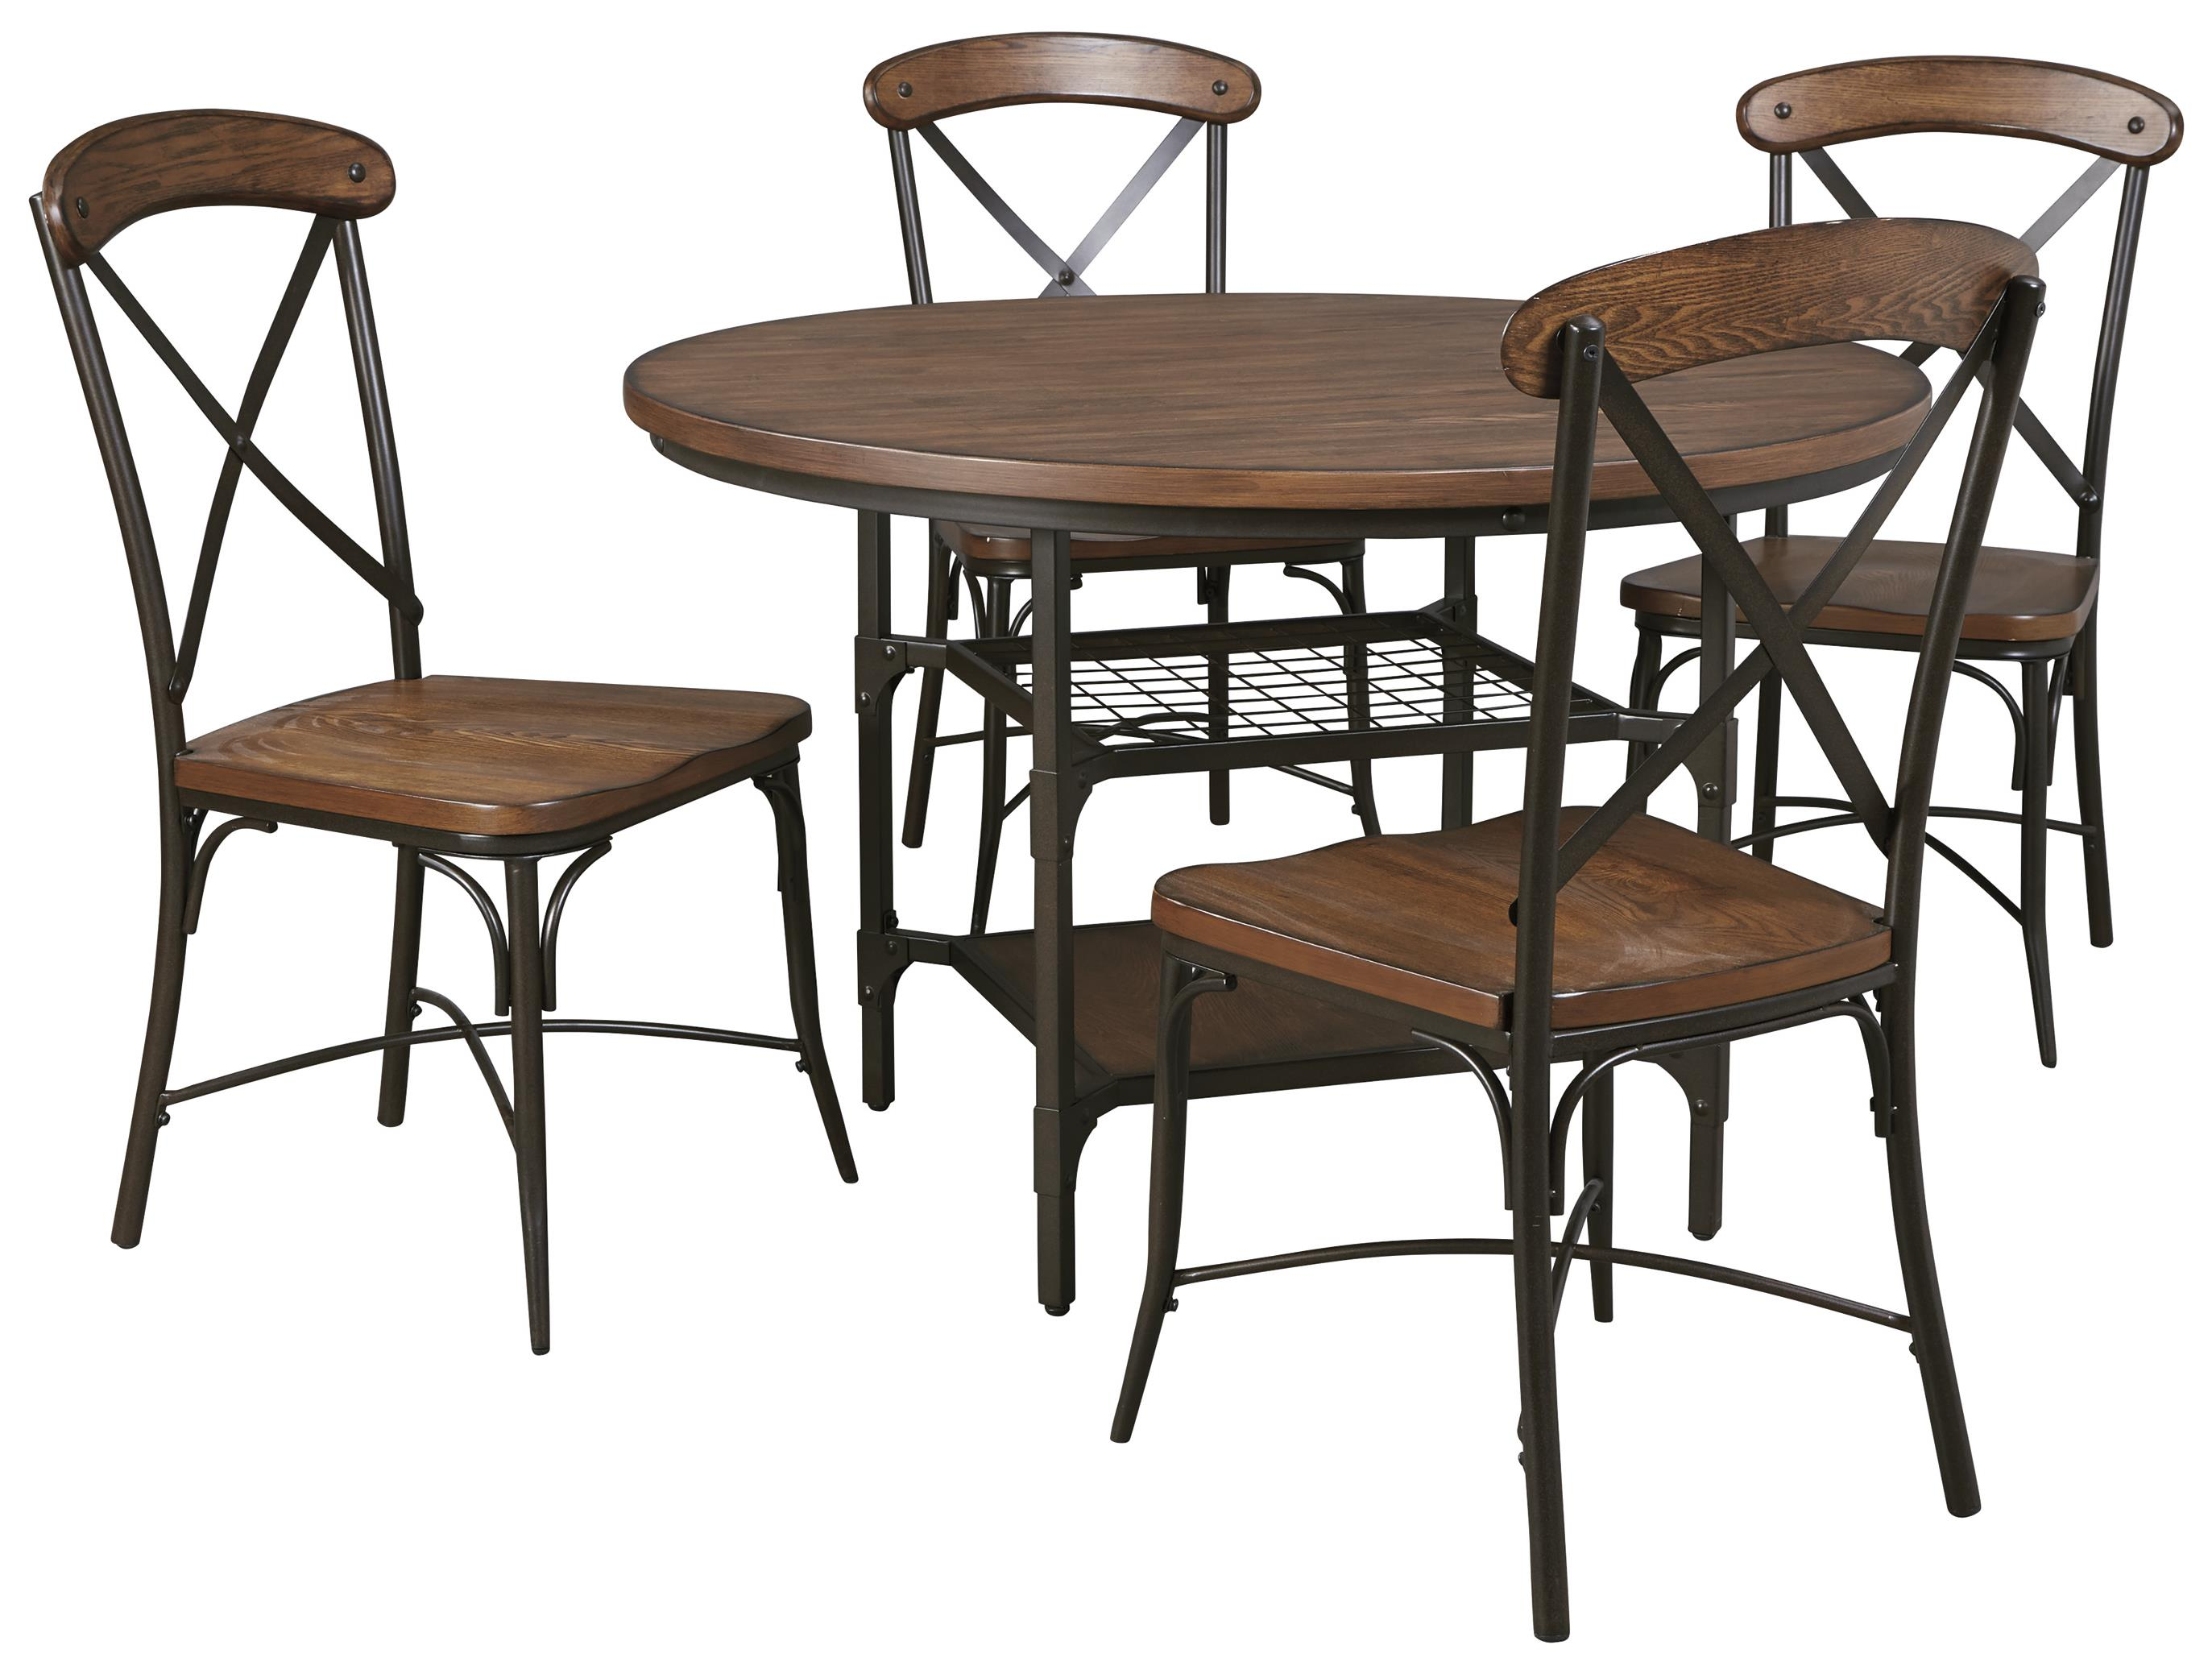 Signature Design by Ashley Rolena 5-Piece Round Dining Room Table Set - Item Number: D405-15+4x01